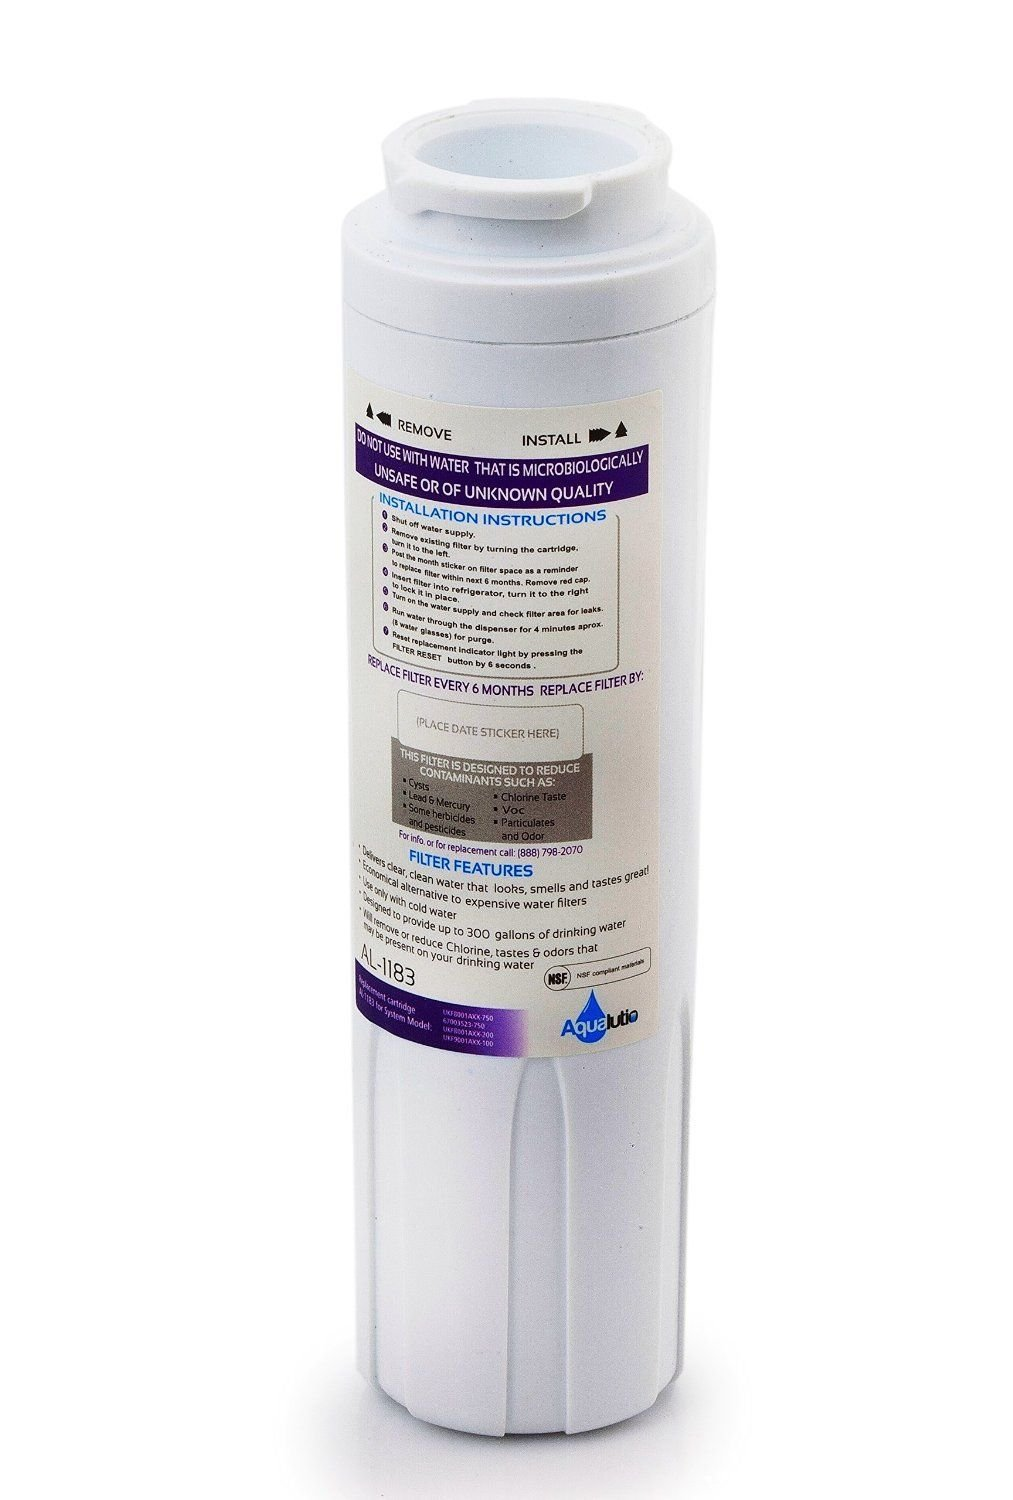 3 Pack- Maytag UKF8001 PUR Water Filter Fast Flow Refrigerator Water Filter Replacement by AQUALUTIO - UKF8001AXX, EDR4RXD1, Whirlpool 4396395, Puriclean II, Kenmore 9006. 3 Pack.